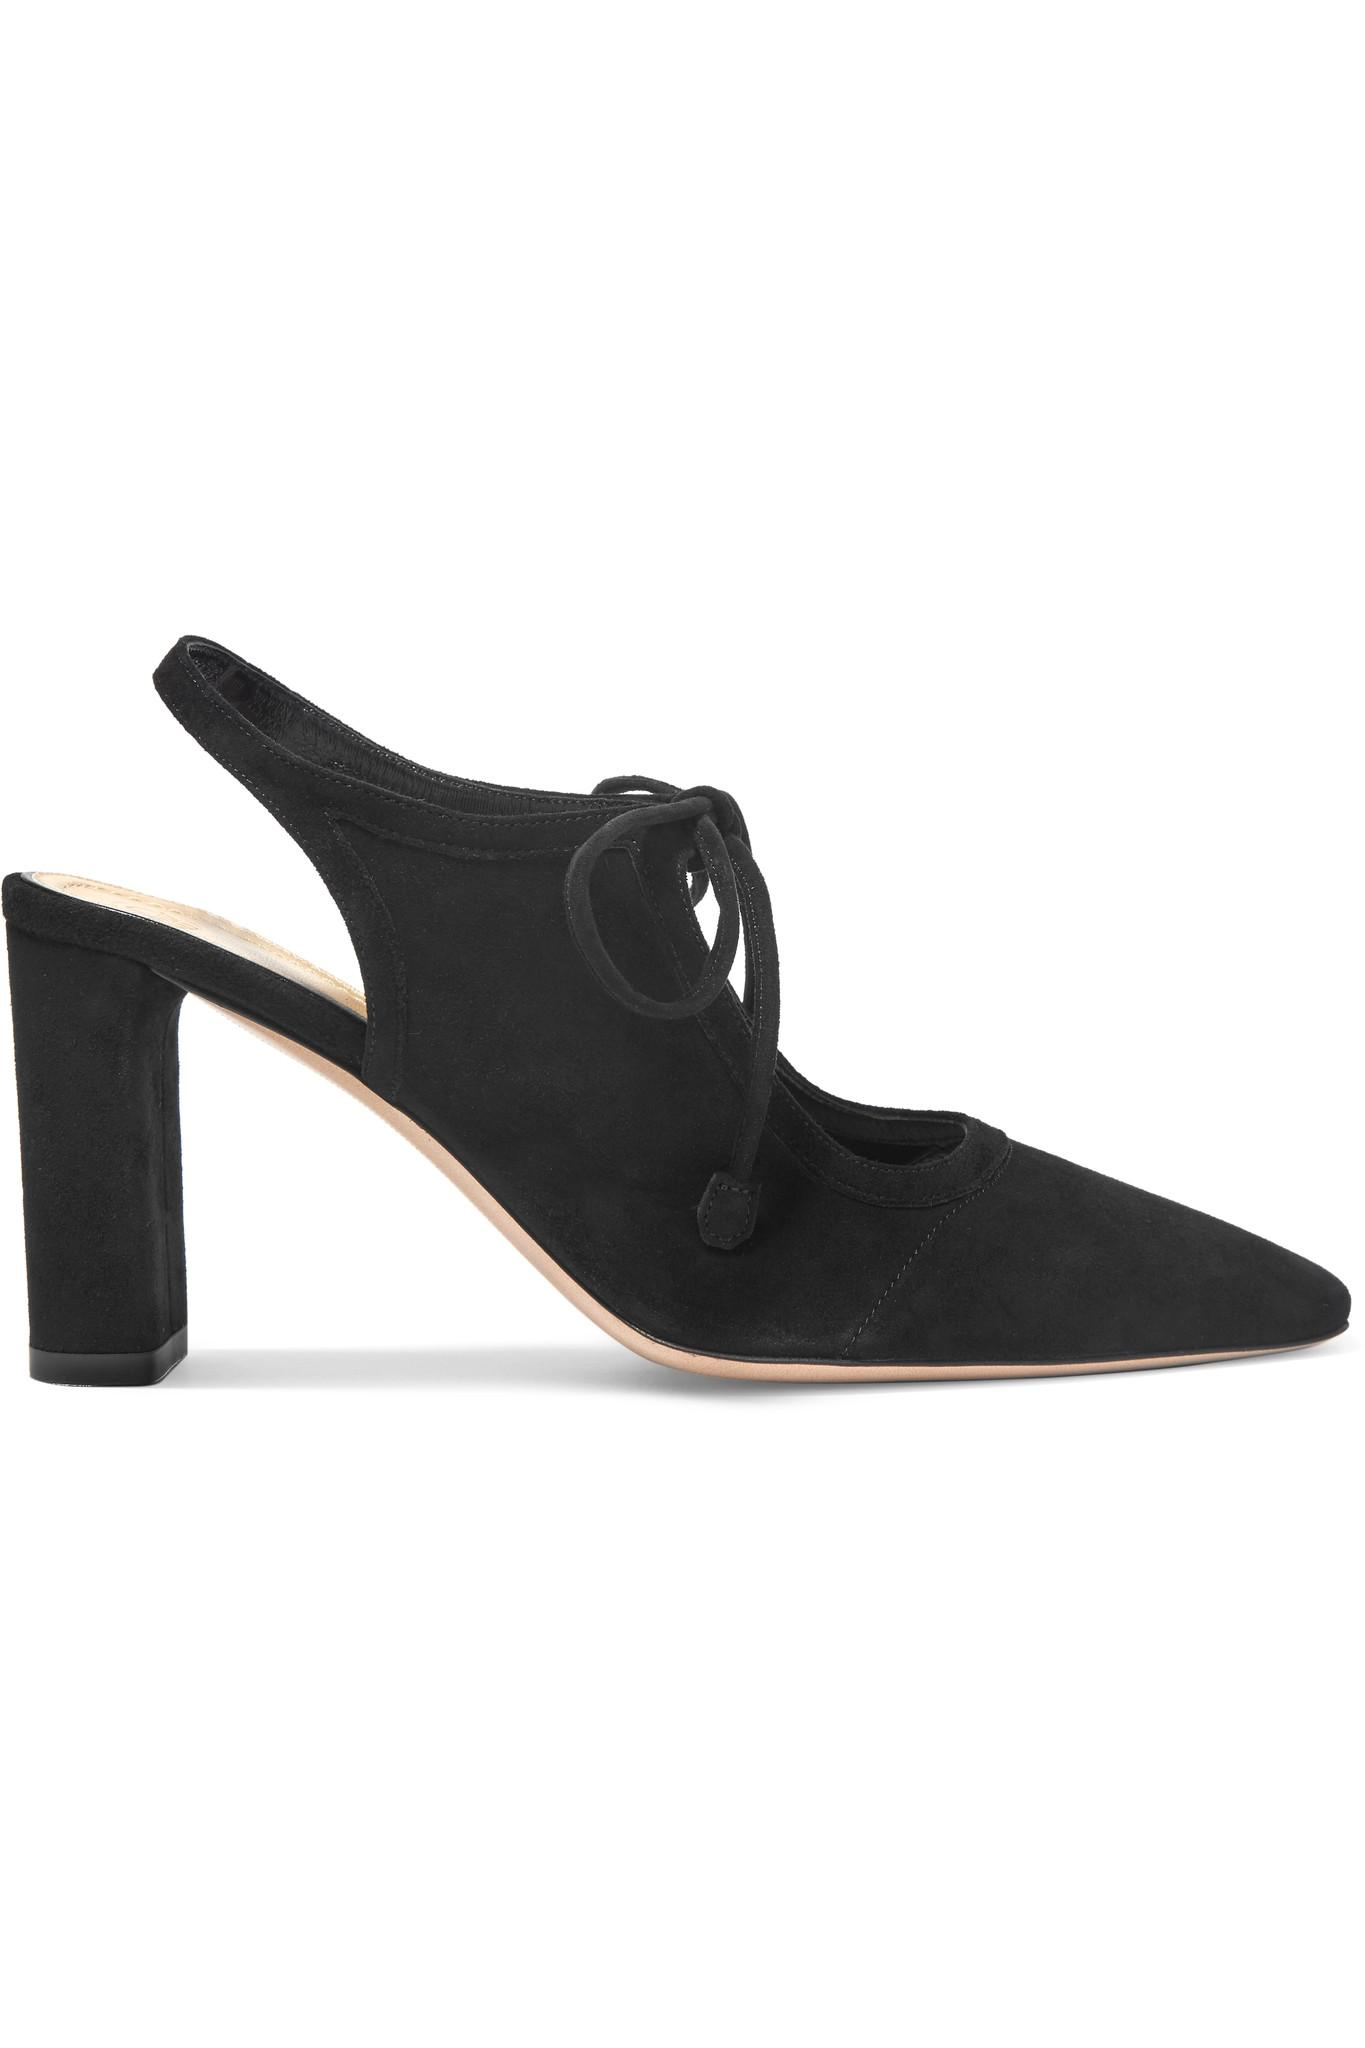 9c81aa44b1f The Row Camil Cutout Suede Pumps in Black - Lyst